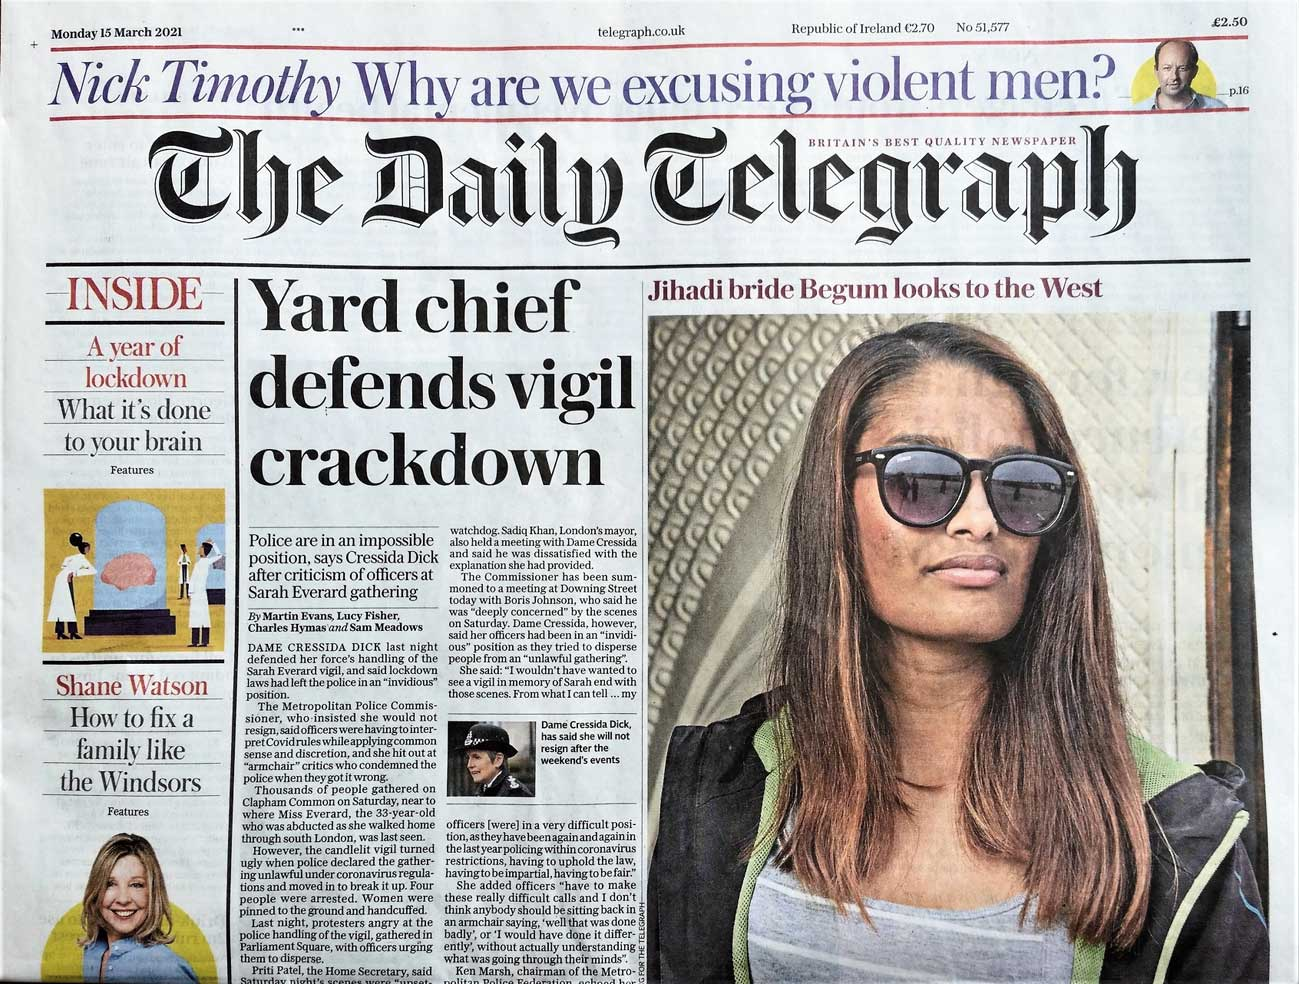 The front page of the March 15th edition of The Daily Telegraph, London, featuring a current picture of Shamima Begum